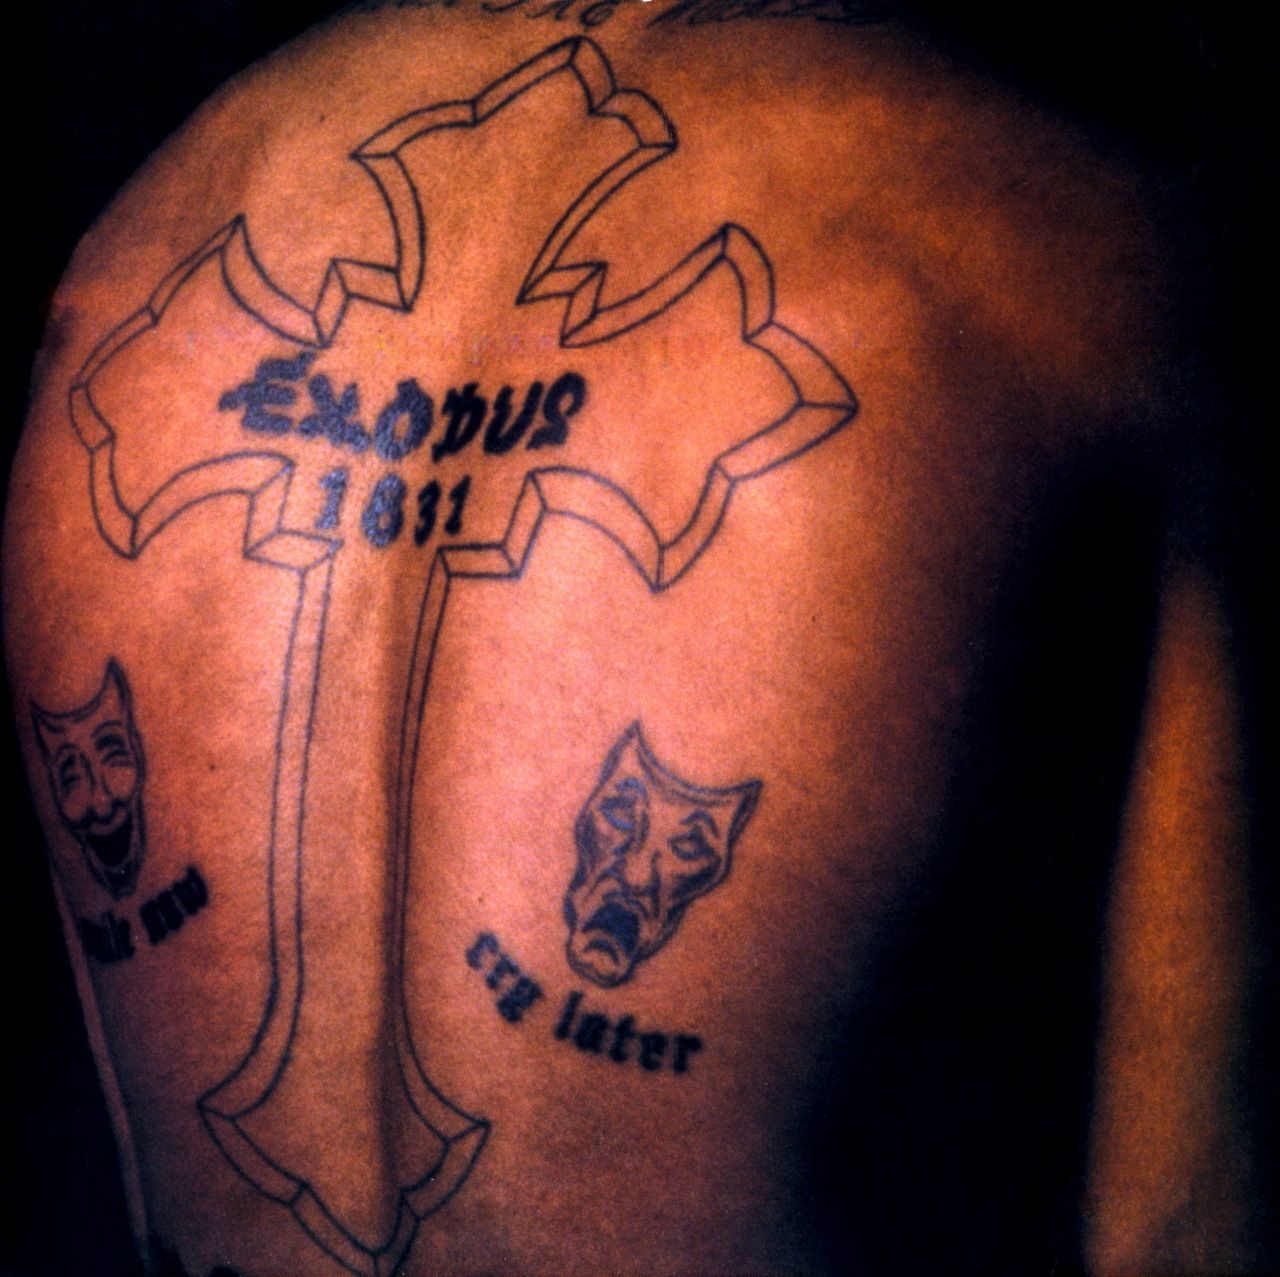 The Two Possible Meanings Of Tupac's Tattoo EXODUS 18:31